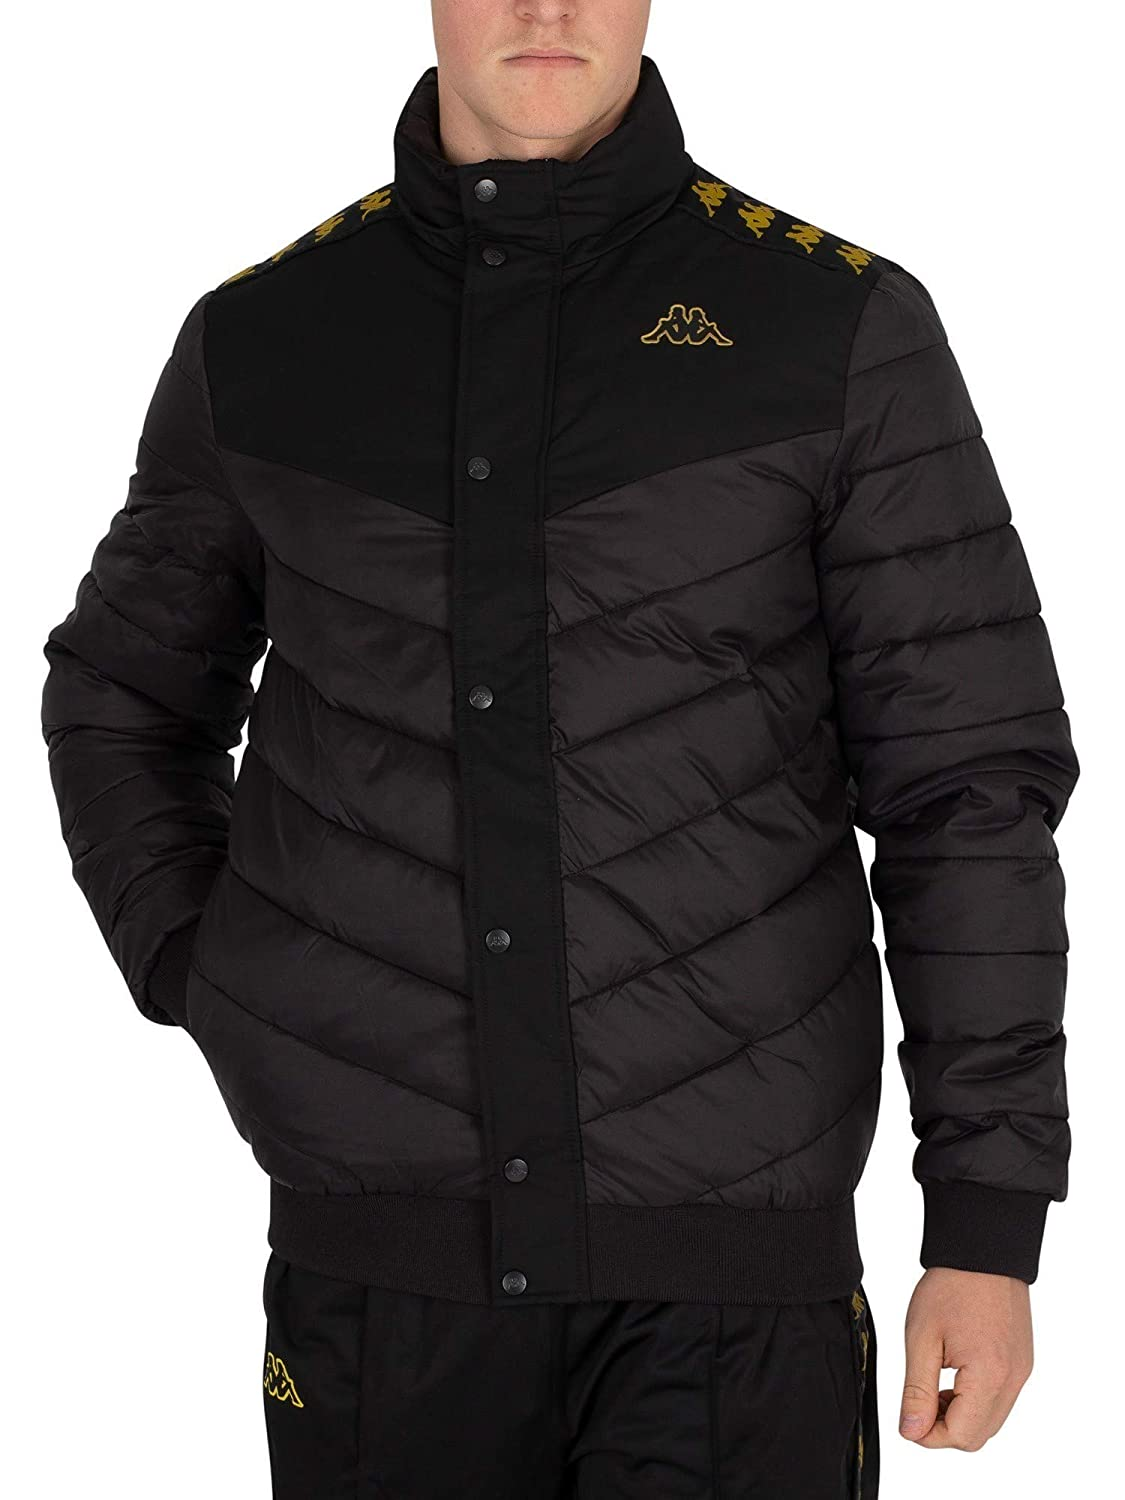 Kappa Men's Aobi Jacket, Black Kappa Men' s Aobi Jacket